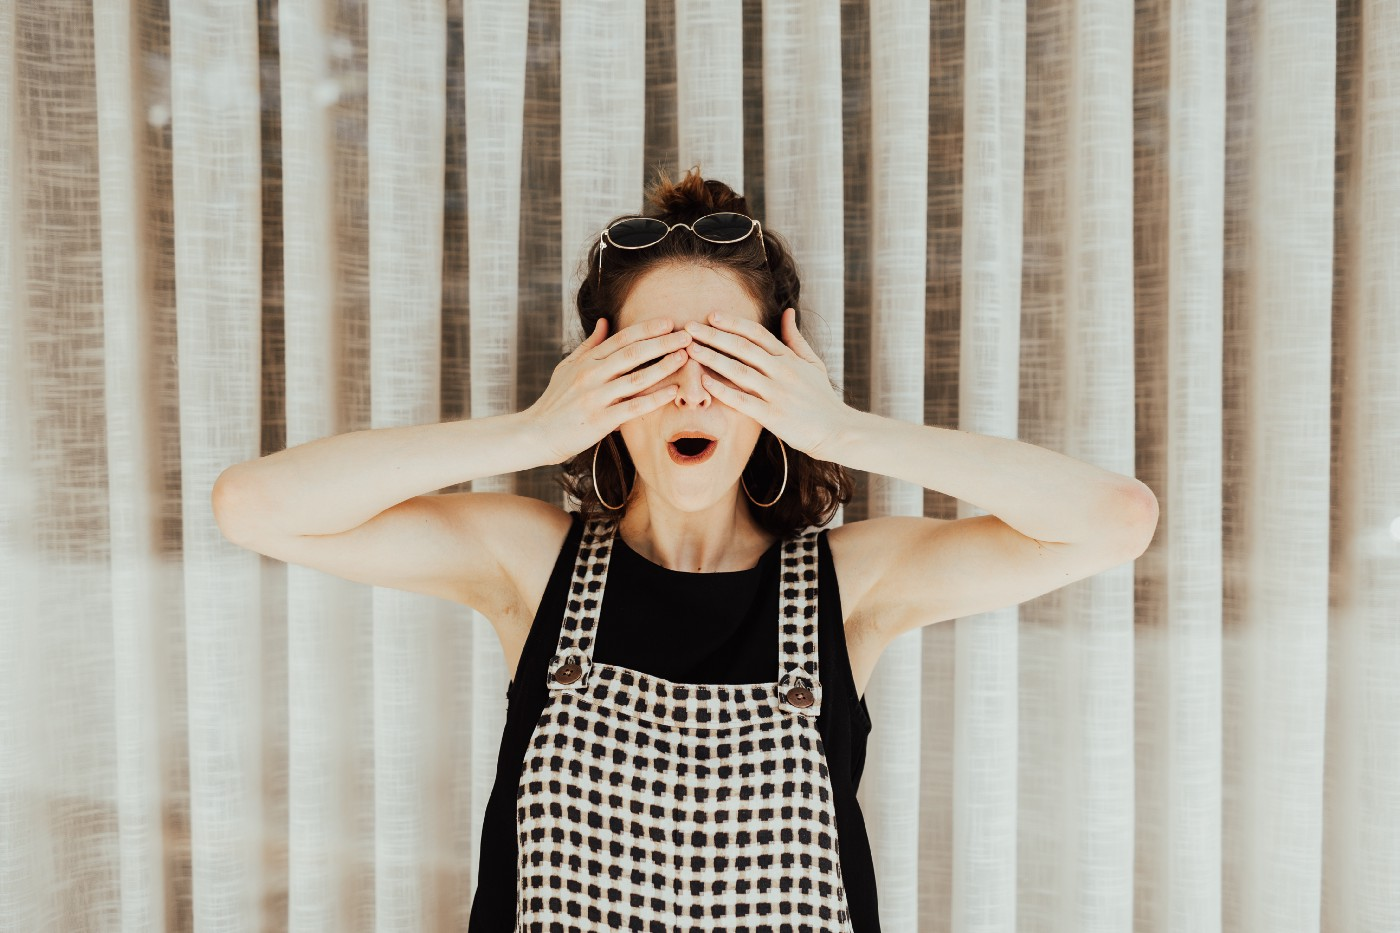 Woman covering her eyes and looking surprised